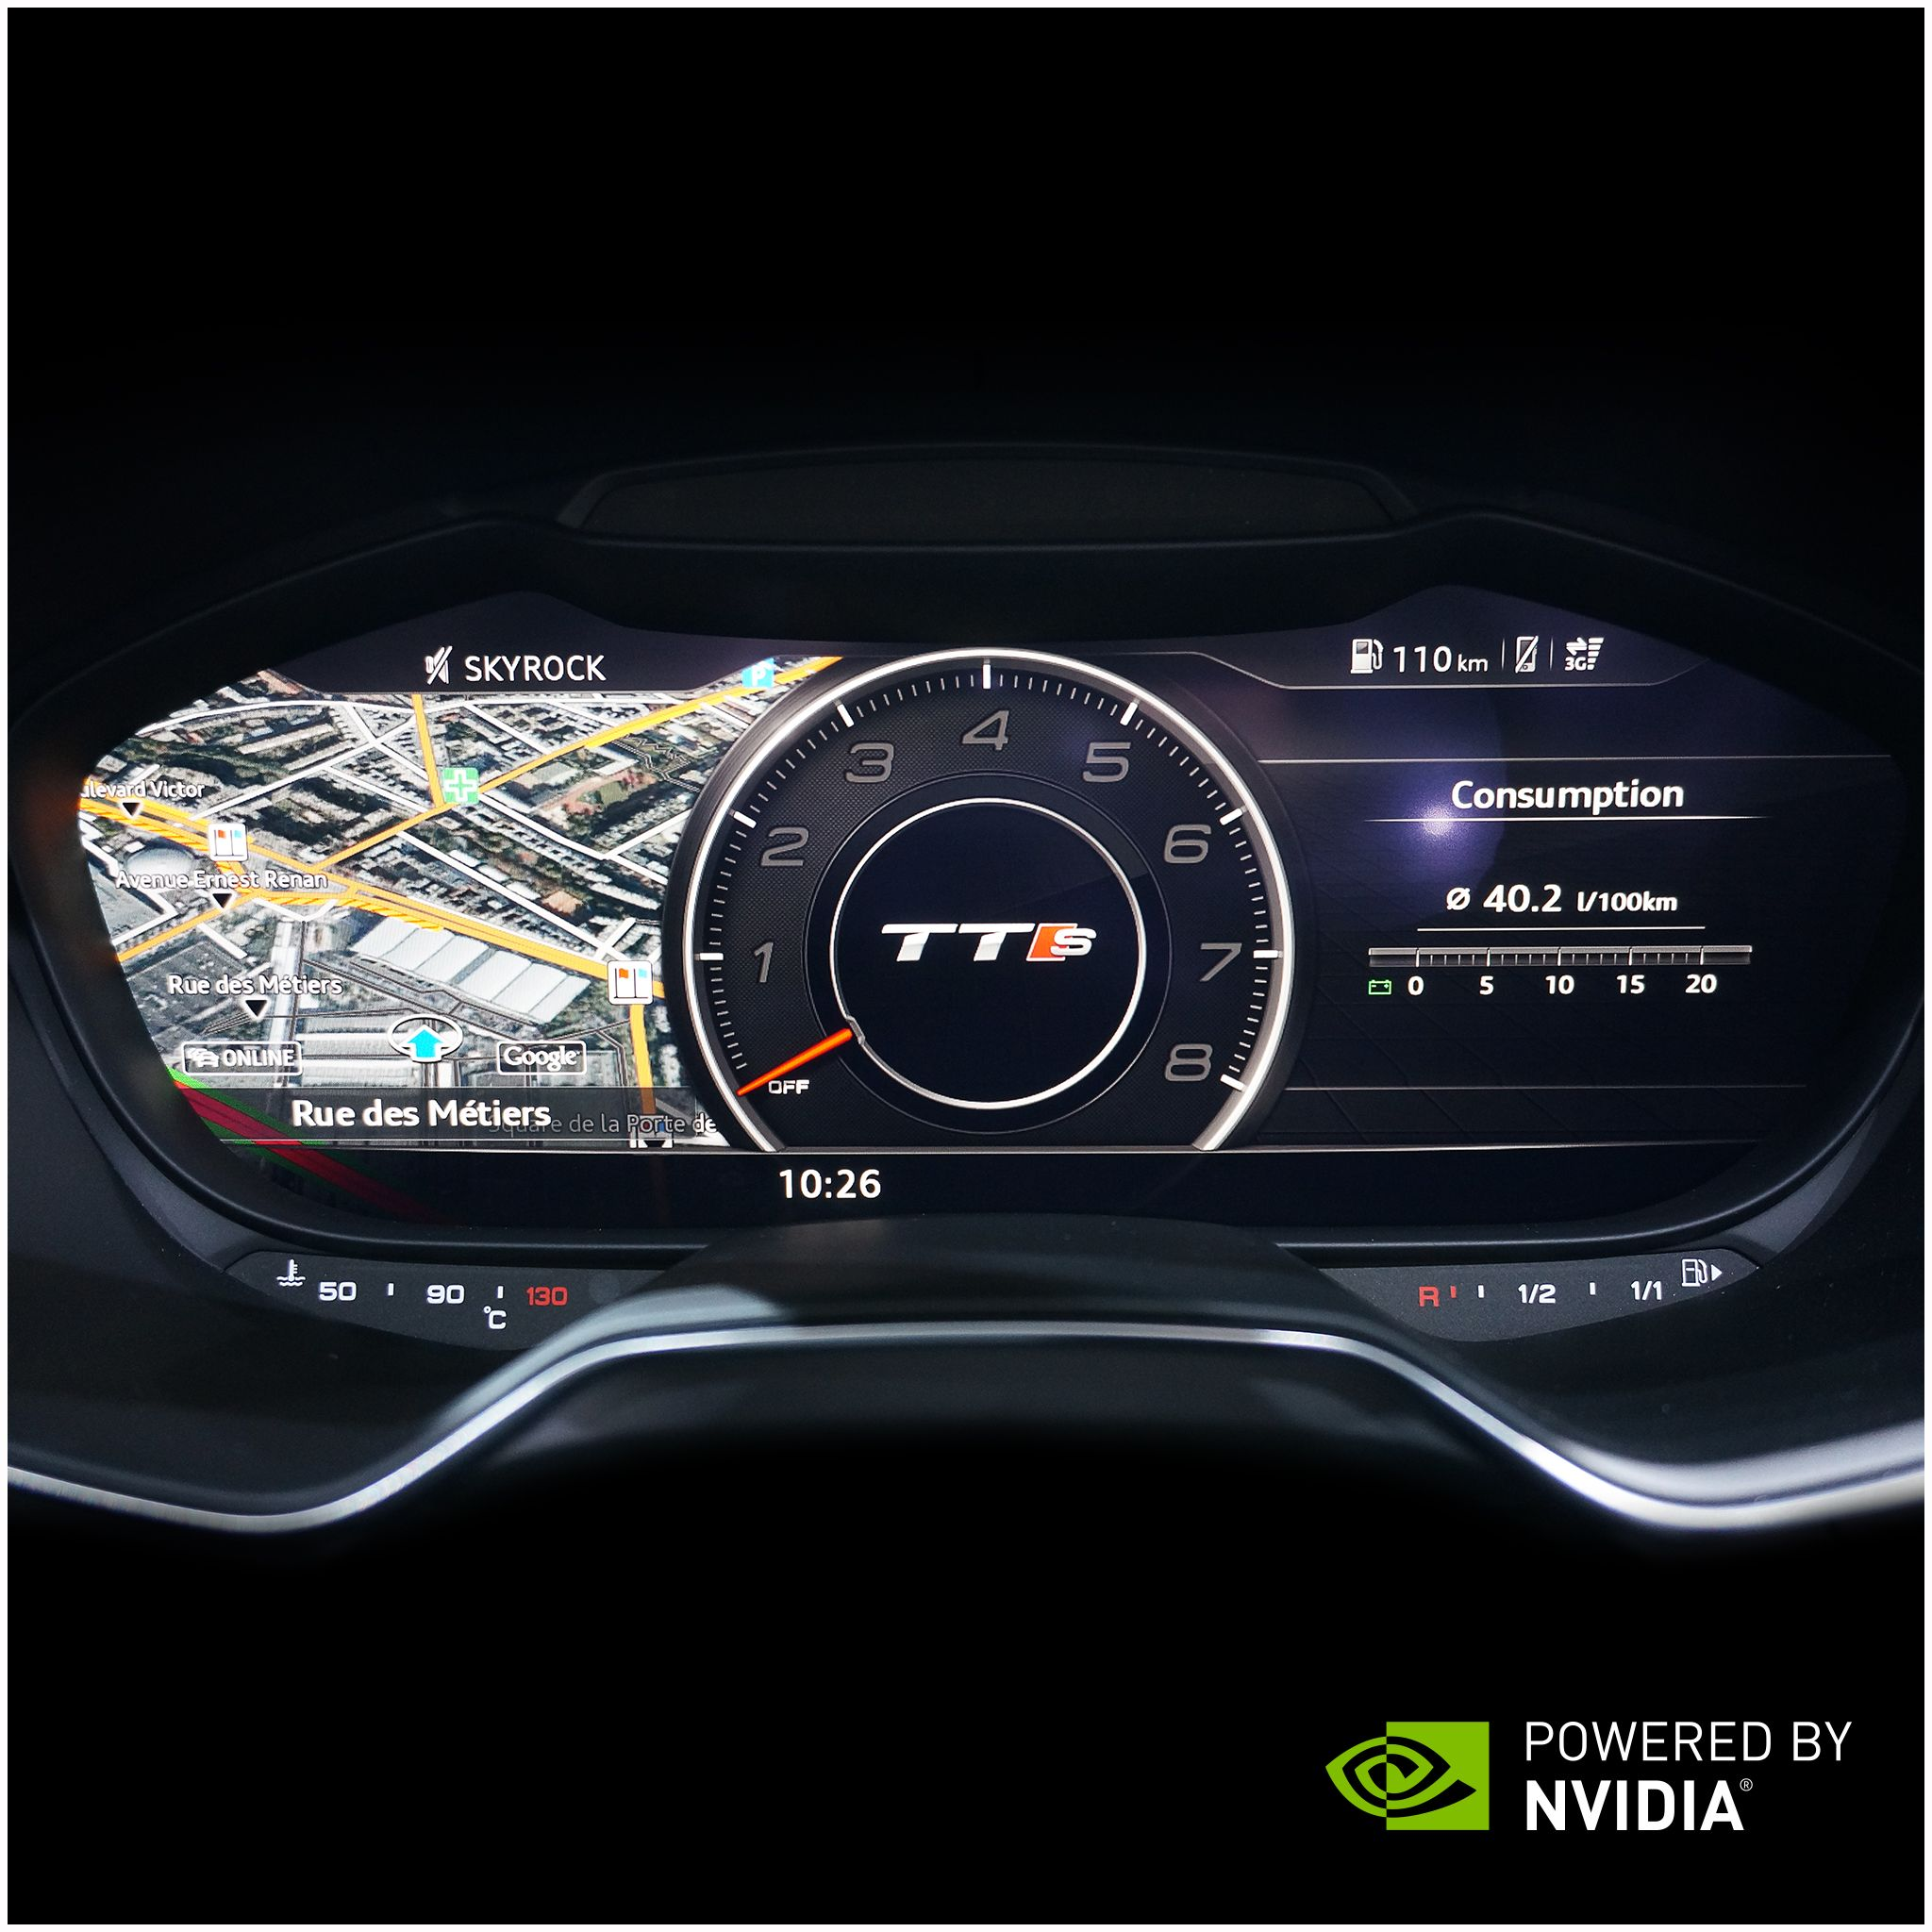 Bmw I8 Dashboard: Get Behind The Wheel Of The Latest Audi TTS To Check Out